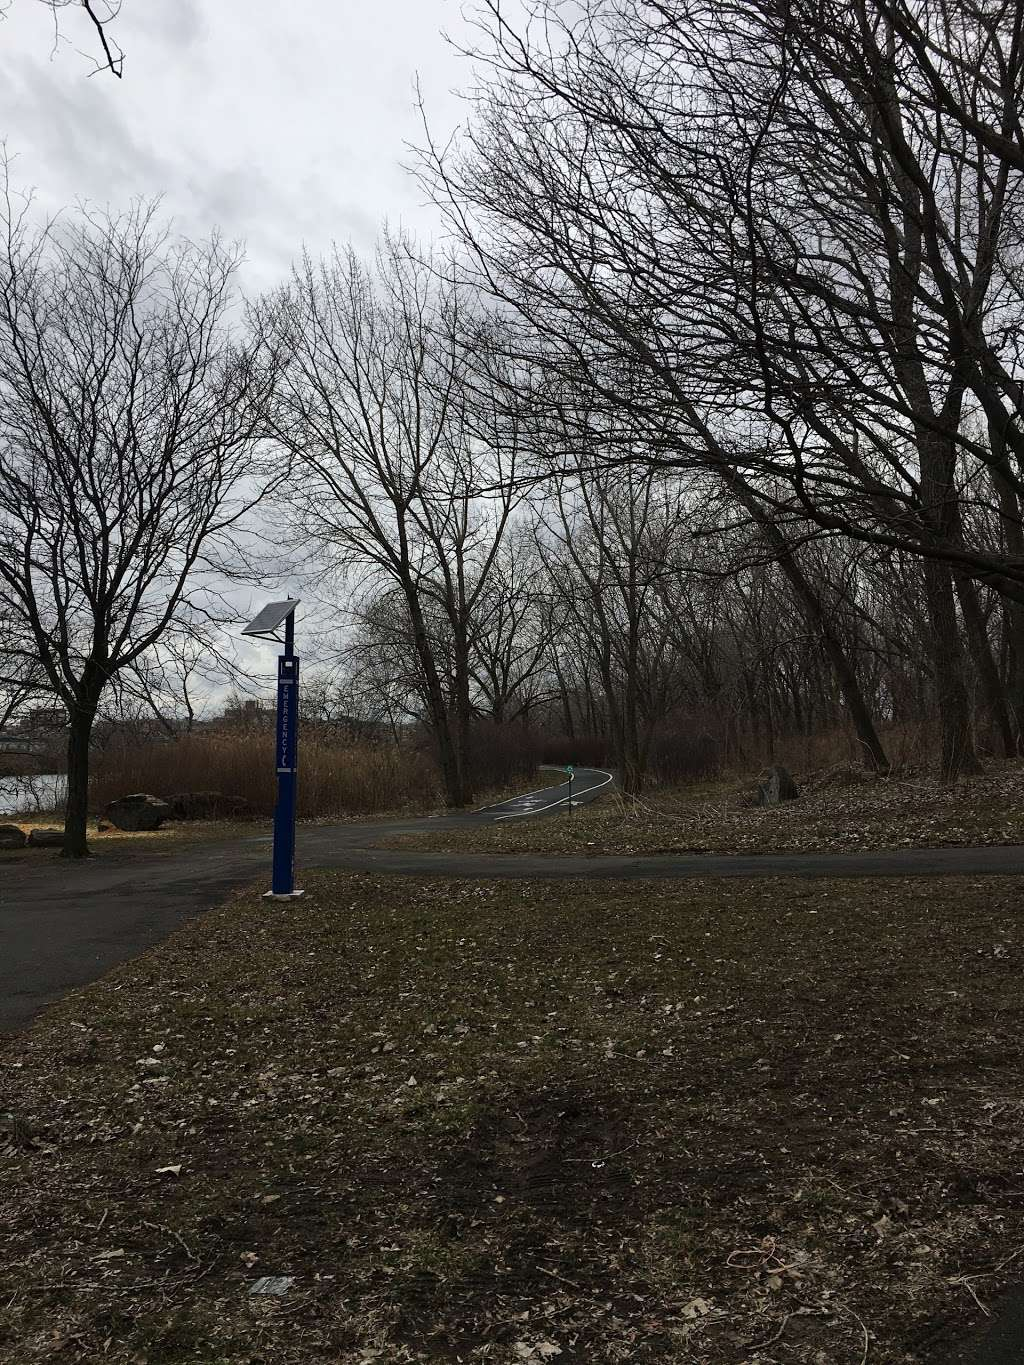 Soundview Park Outdoor Fitness Equipment - gym    Photo 10 of 10   Address: Lafayette Ave, Bronx, NY 10473, USA   Phone: (212) 639-9675